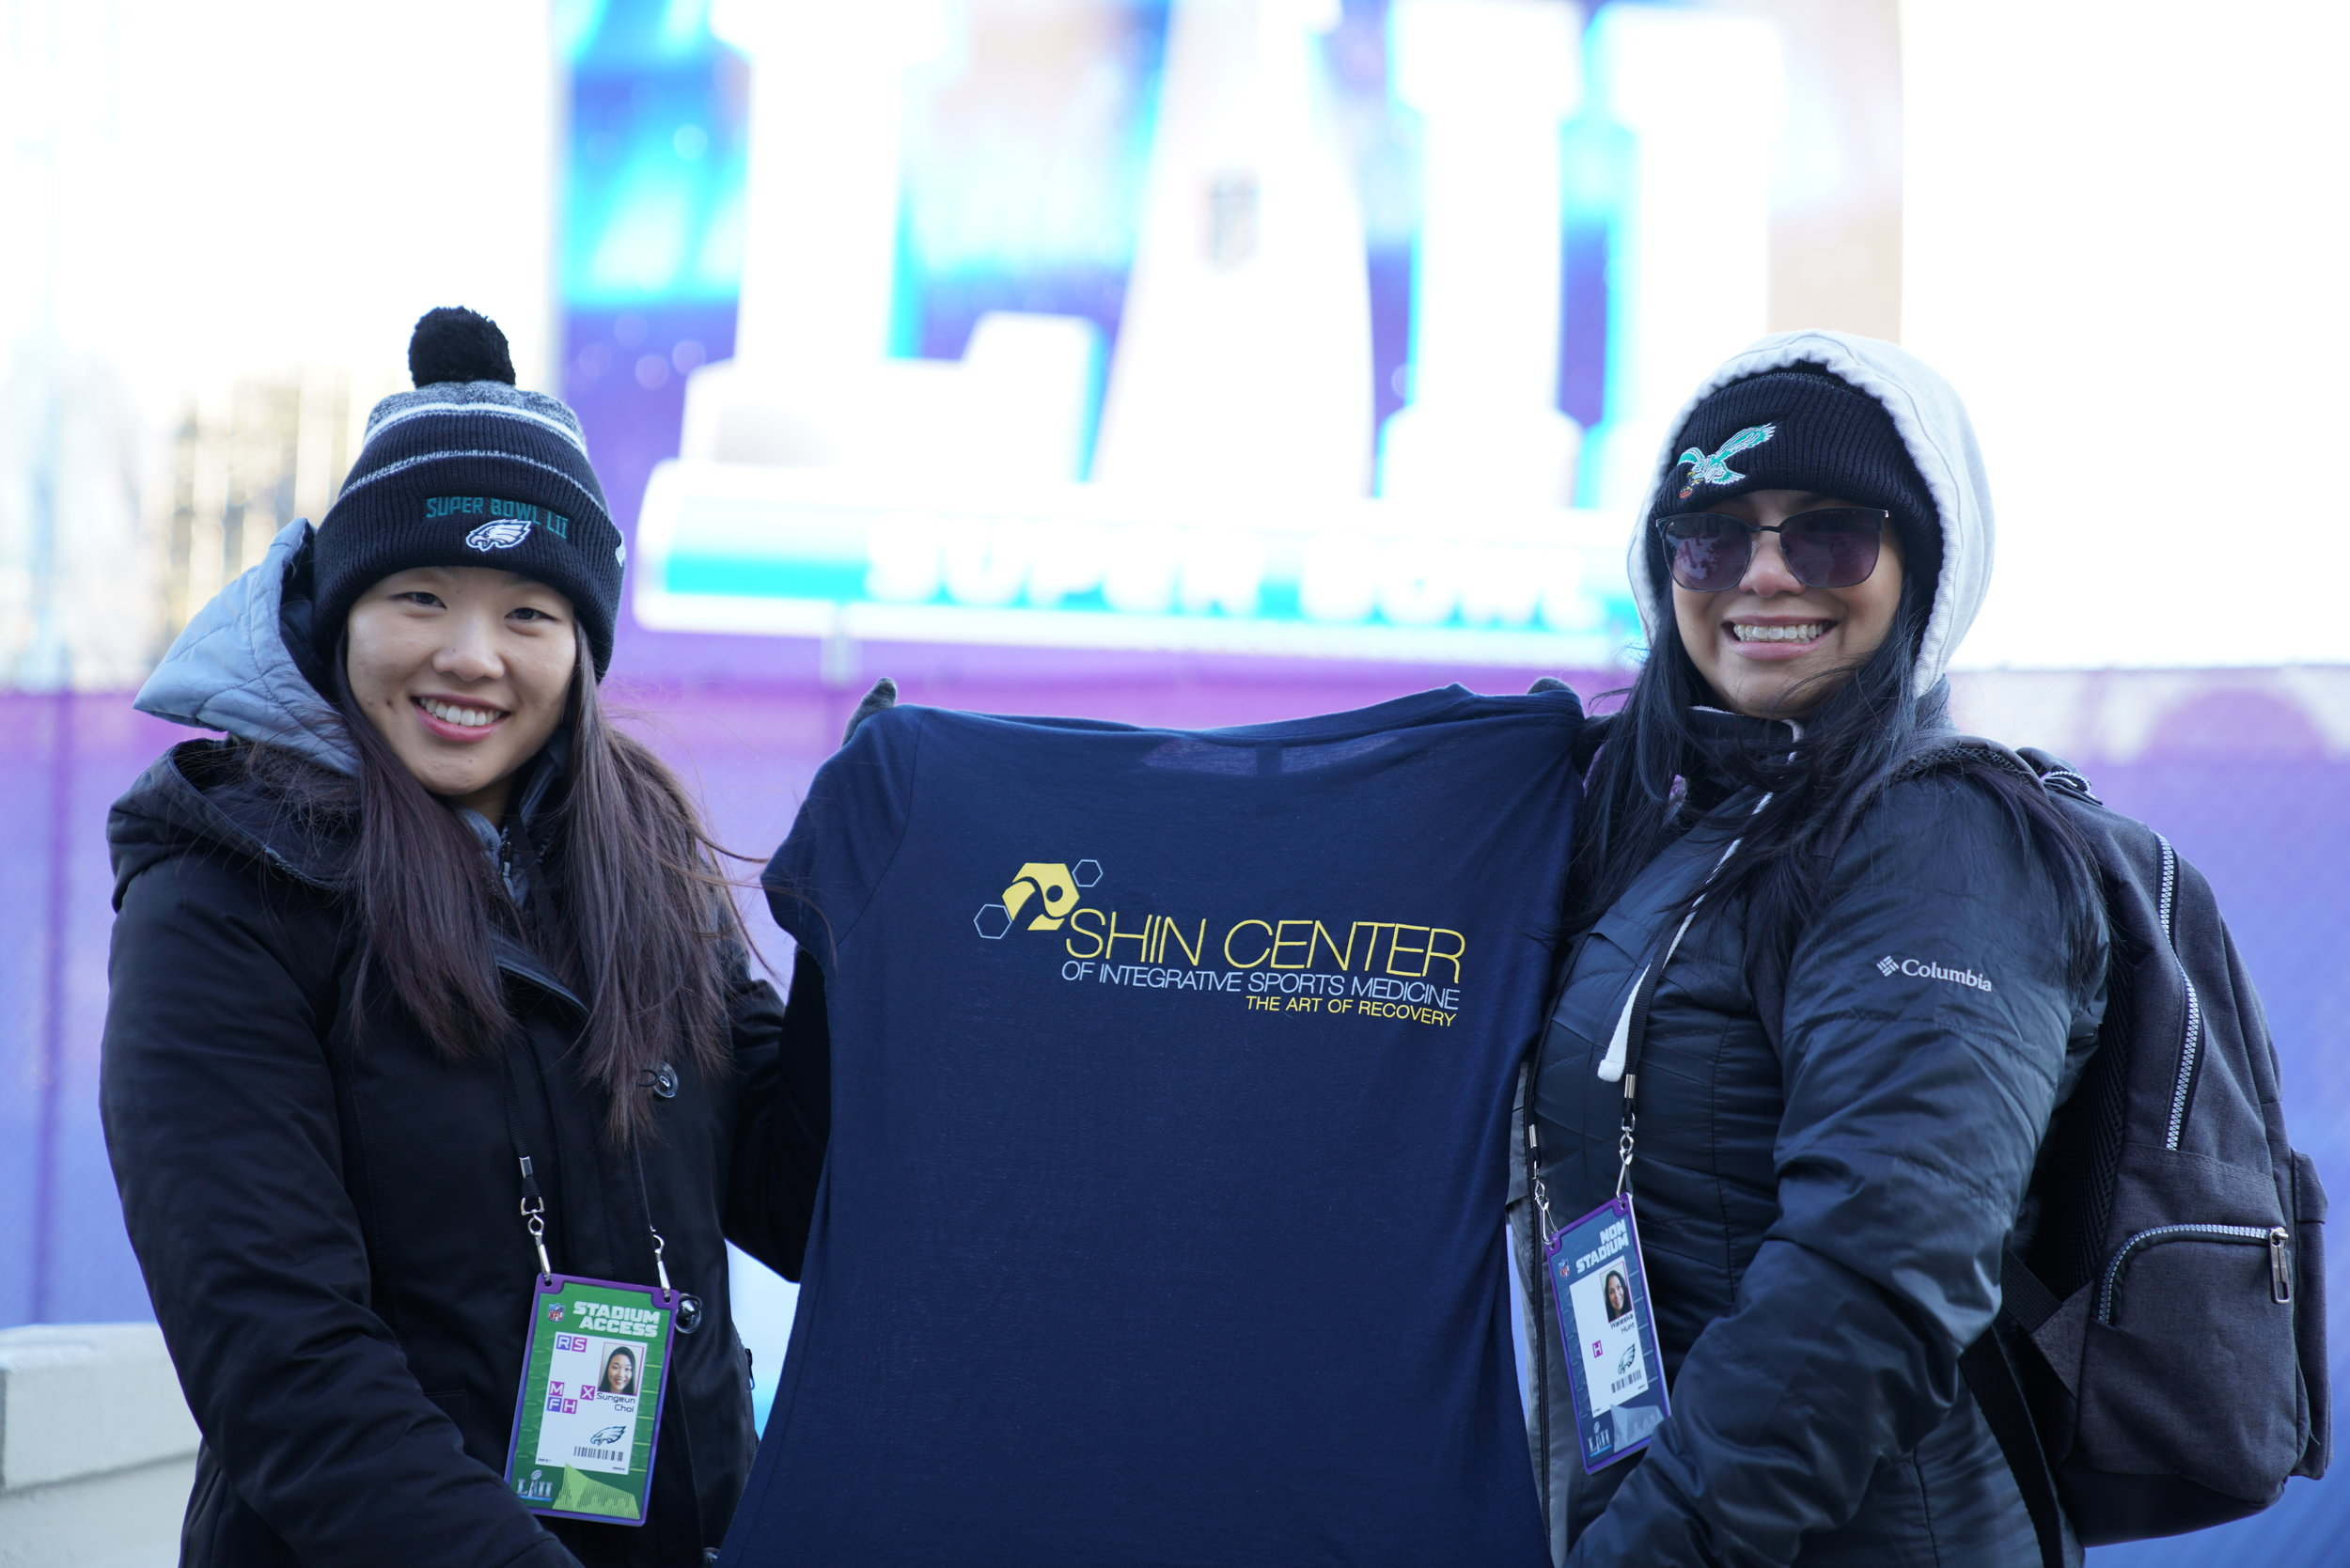 Outside the Stadium with Shin Center T-Shirt